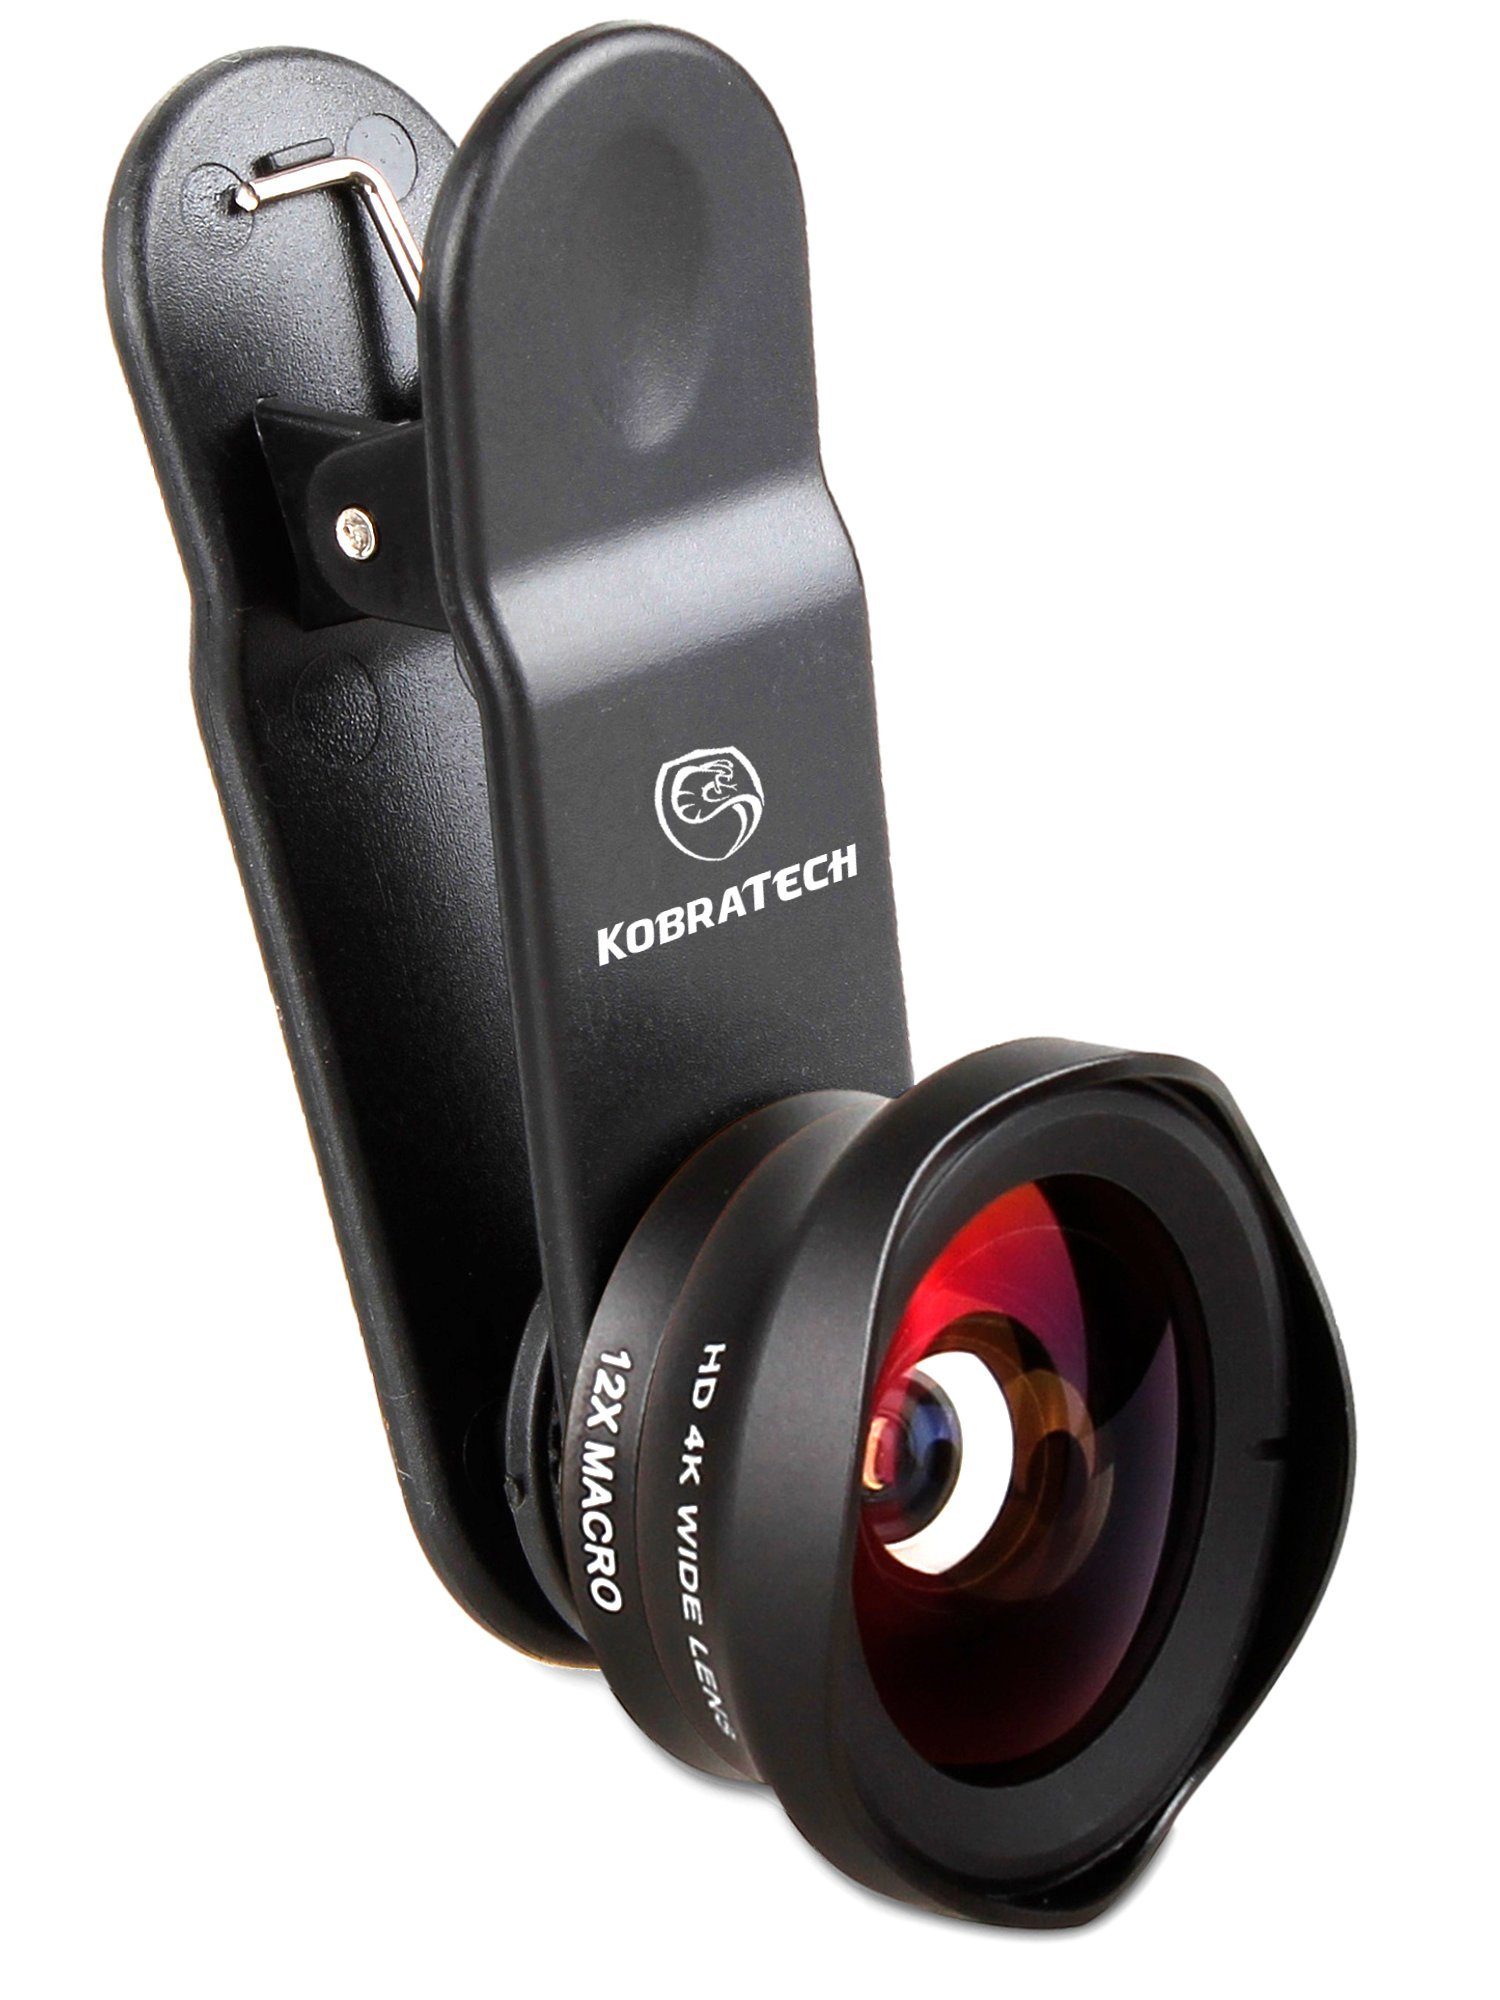 KobraTech 4K iPhone Camera Lens Kit - HD Wide Angle Phone Lens & Macro Cell Phone Lens iPhone & Android - Includes Remote Shutter